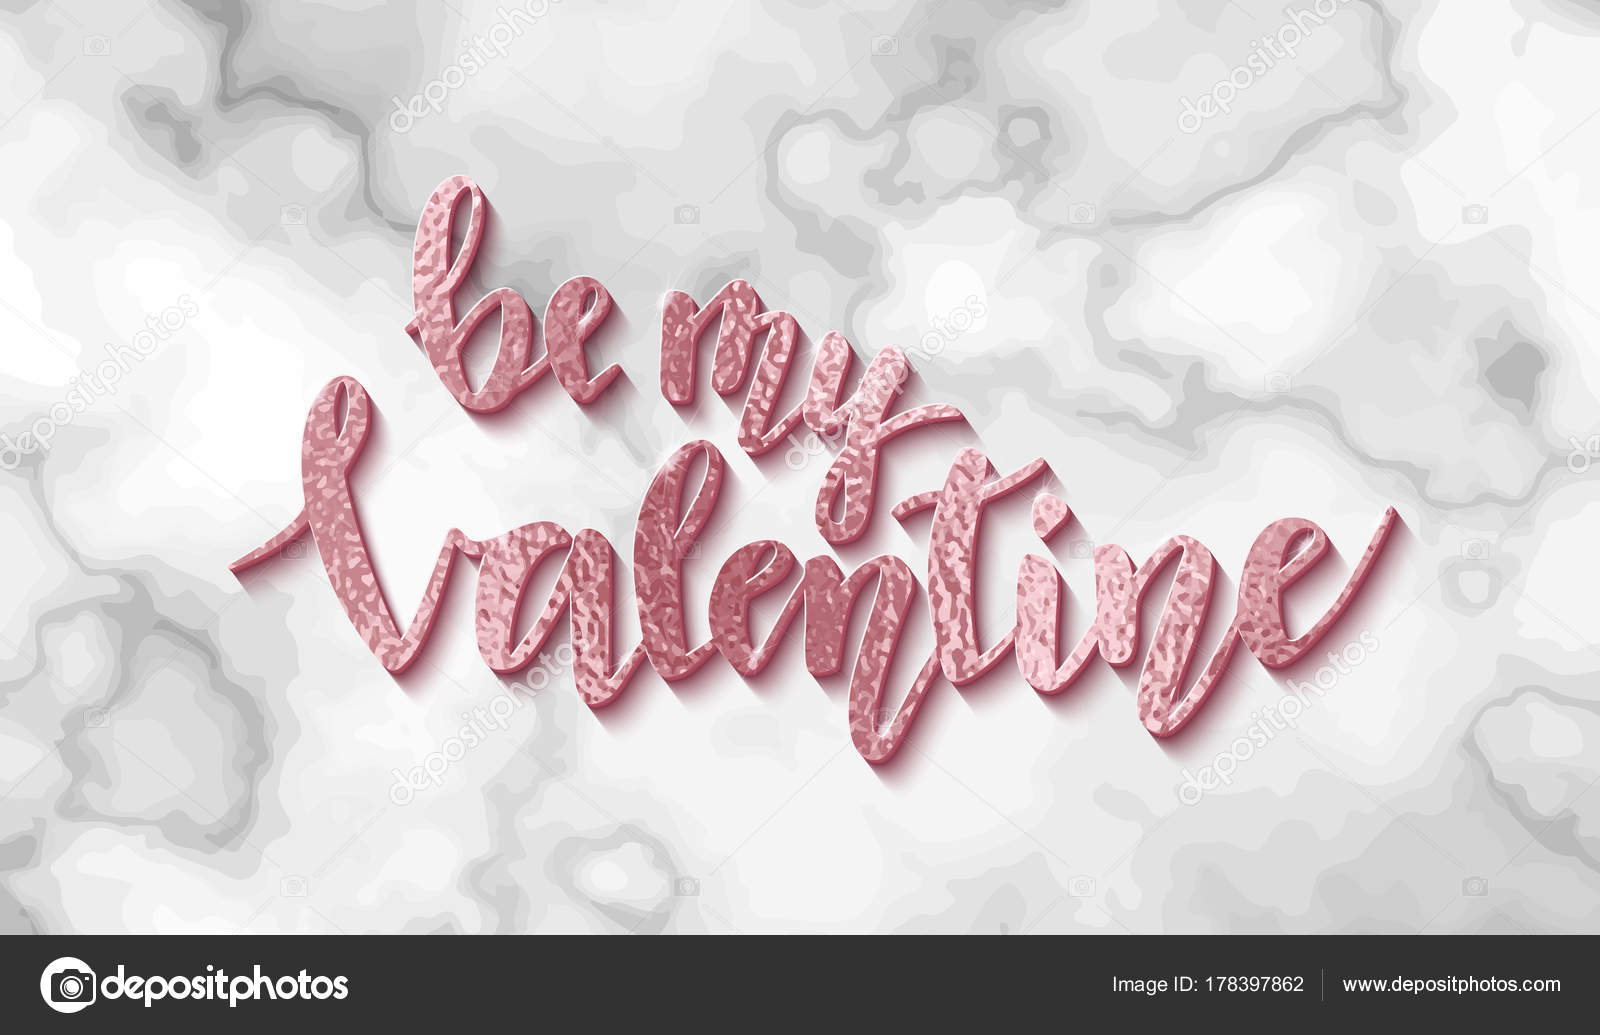 Top Wallpaper Marble Heart - depositphotos_178397862-stock-illustration-geometric-valentine-day-card-marble  Pictures_571110.jpg